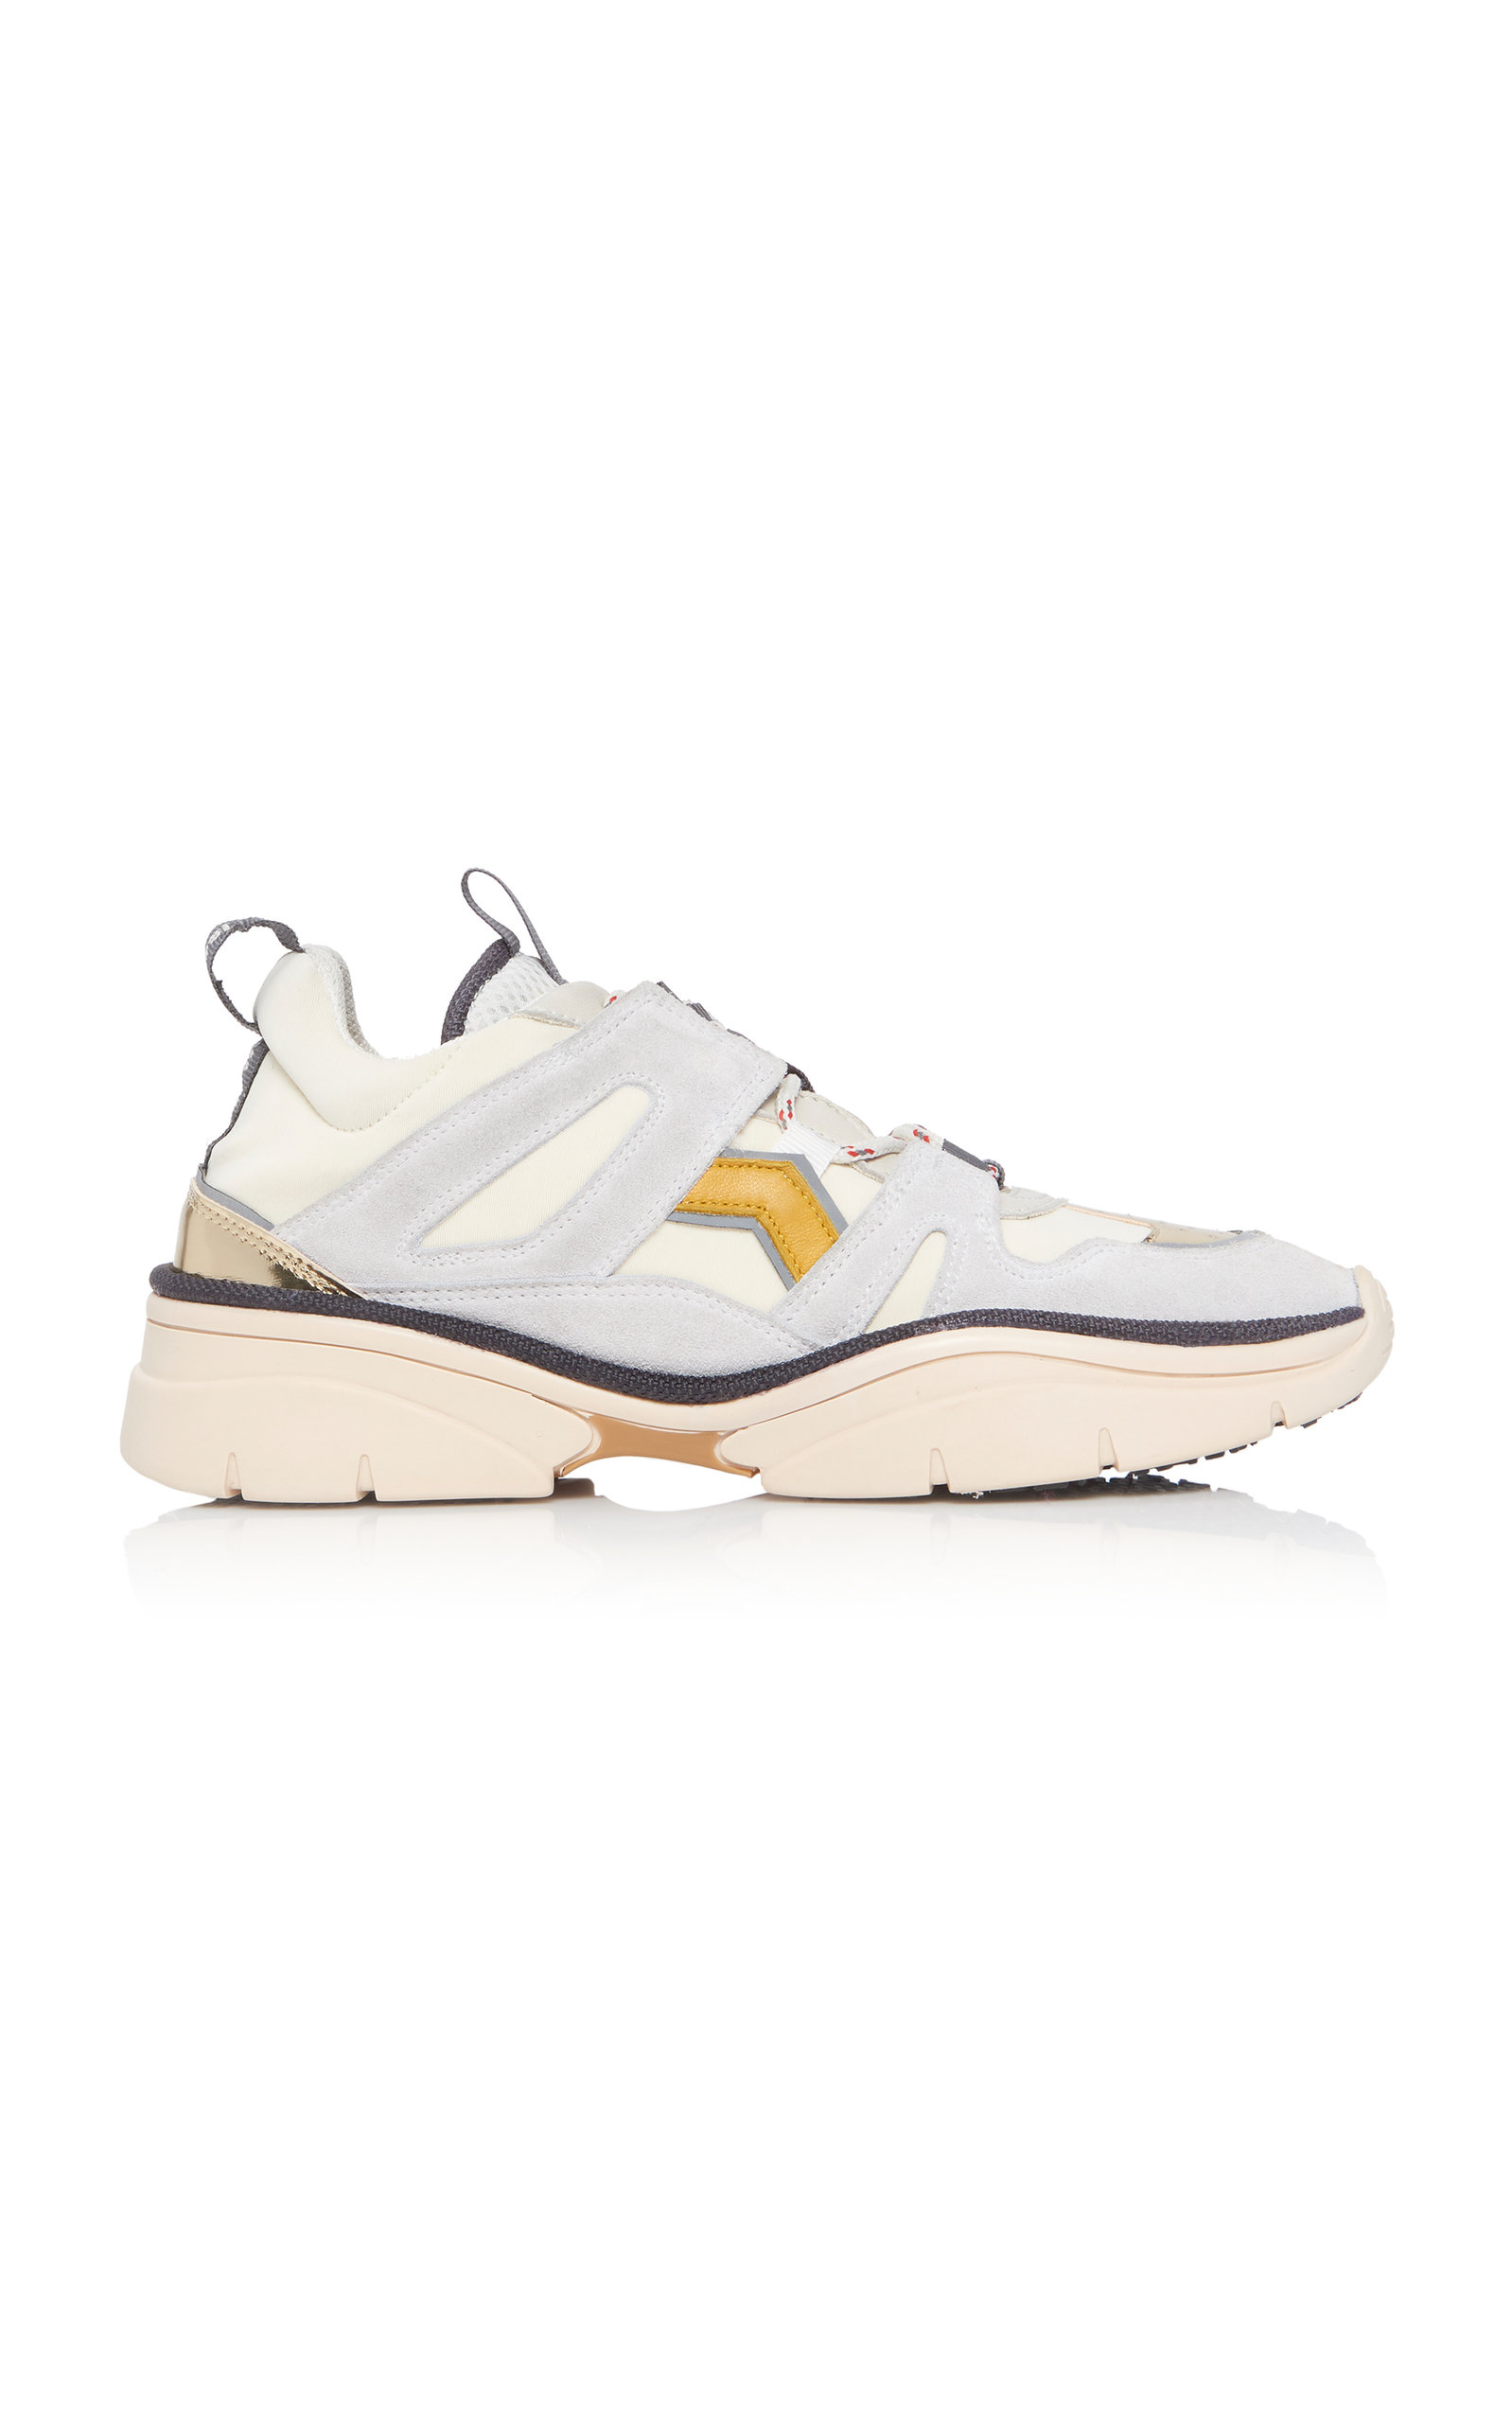 Kindsay Leather Sneakers in White